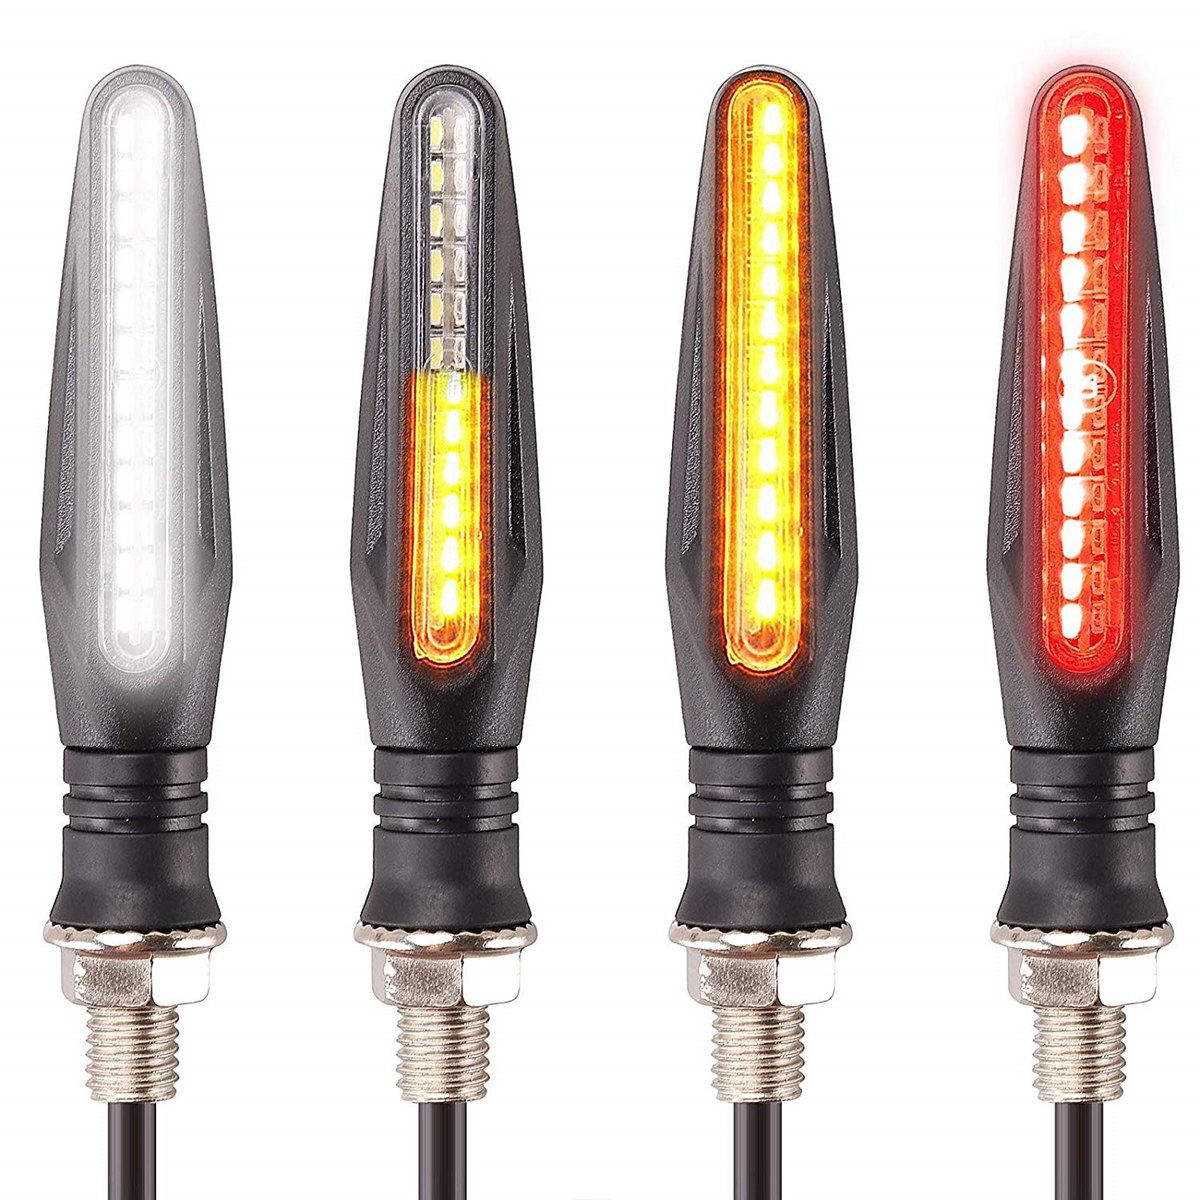 2x Motorcycle Indicators Front Flowing Turn Signal & White Daytime Running Light Rear Dynamic Led Turn Signals & Red Brake Light